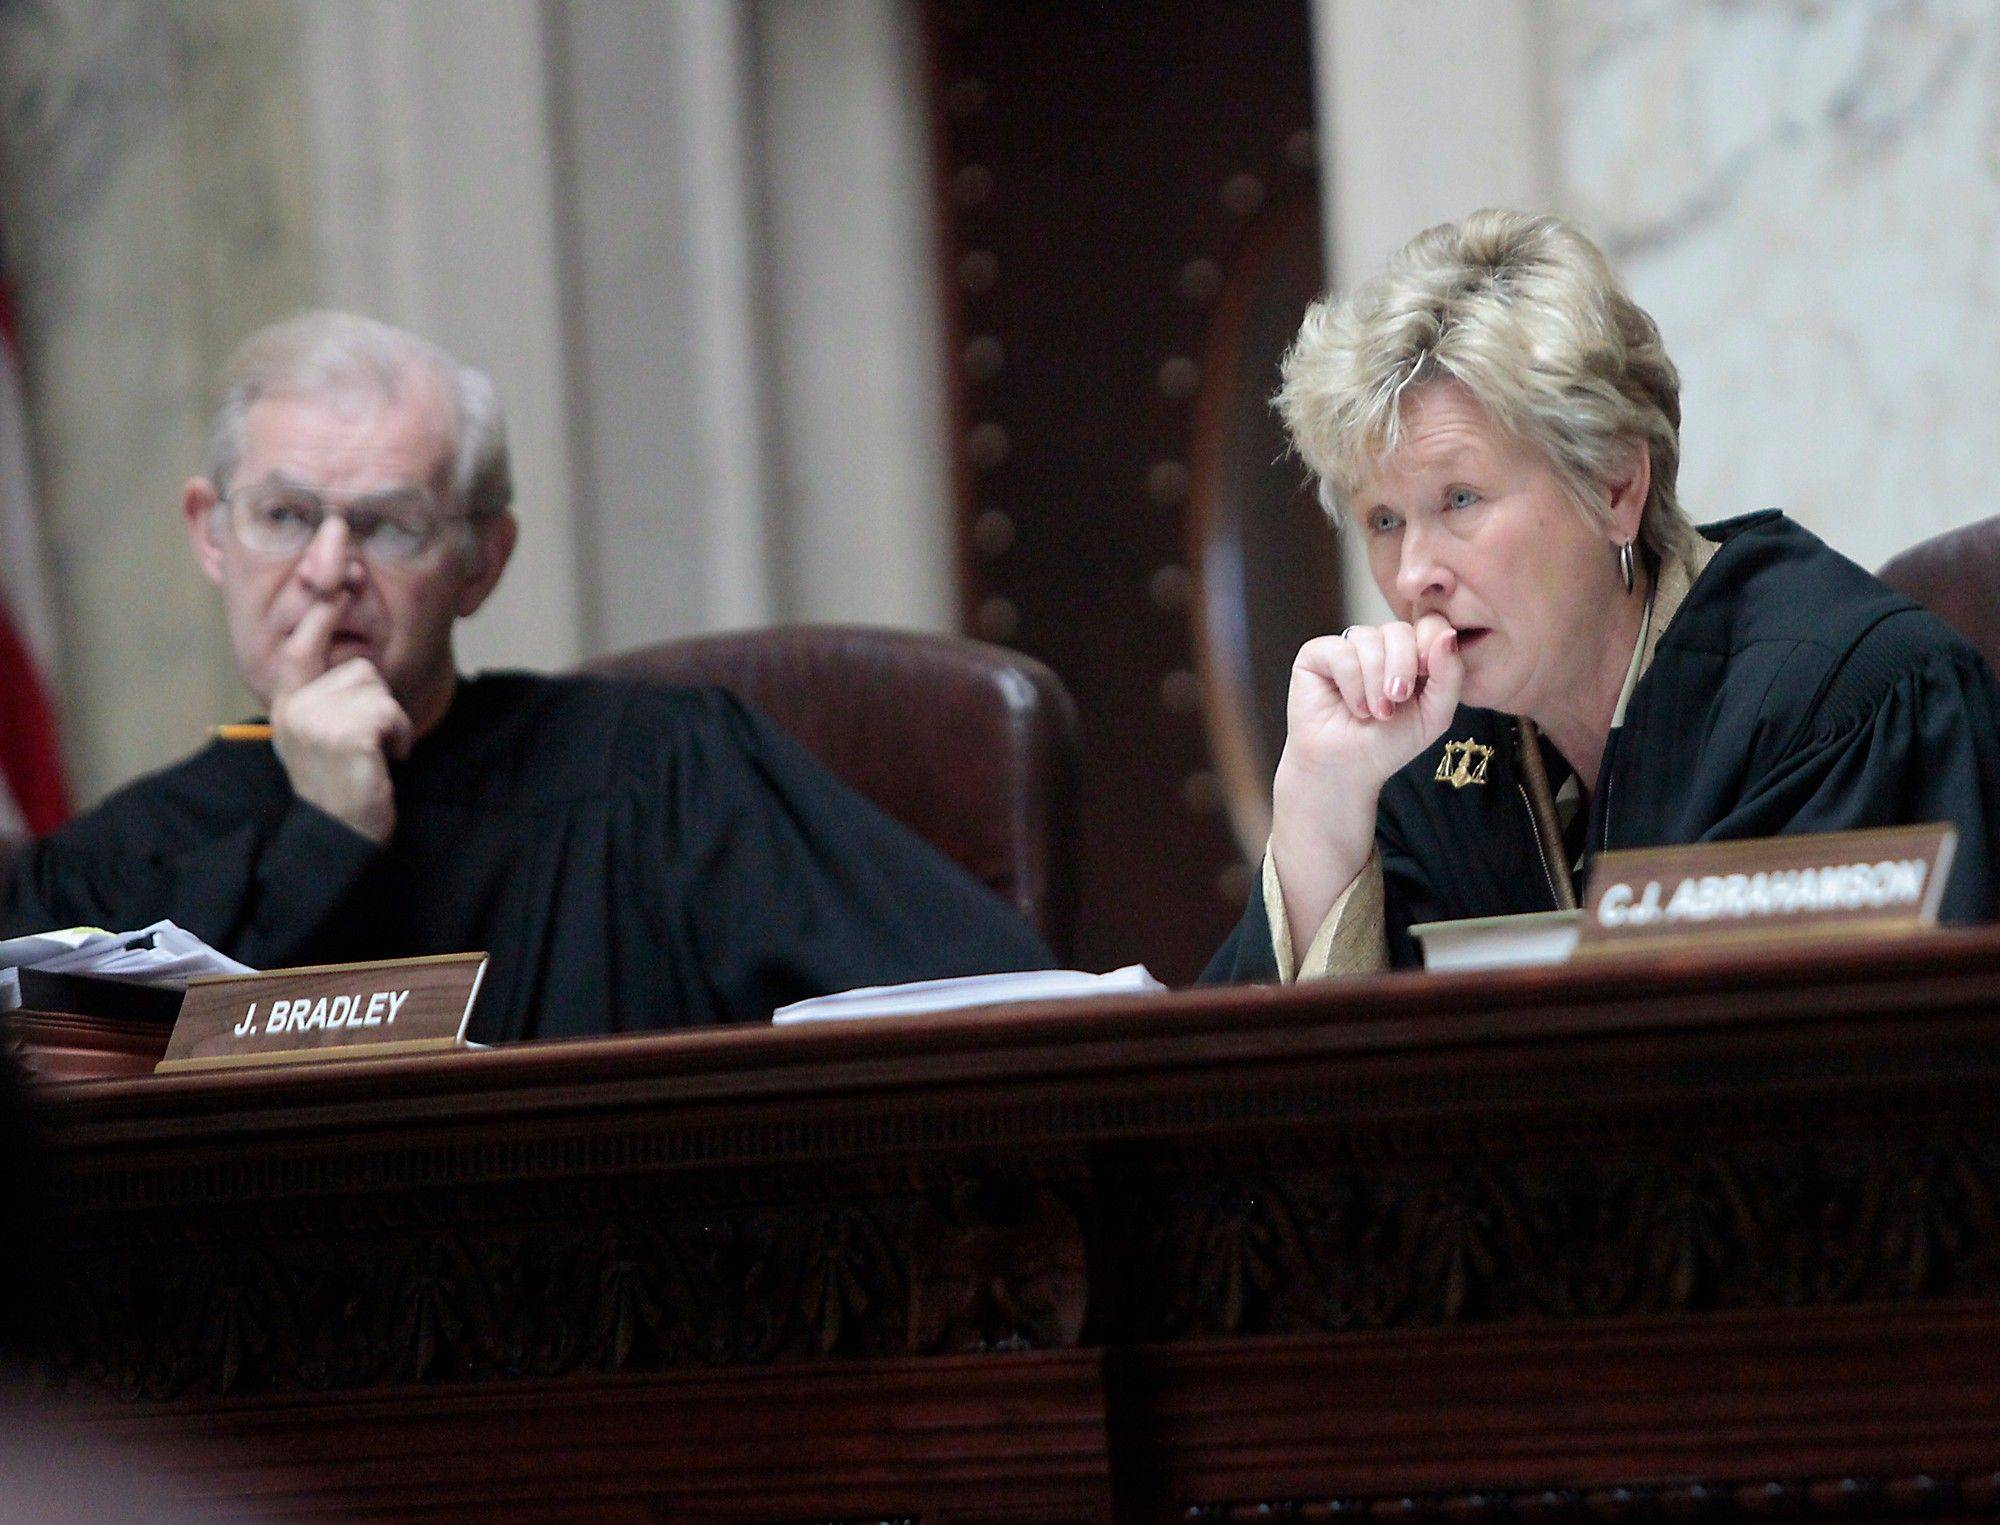 Wisconsin Supreme Court Justice David T. Prosser, Jr. won't face criminal charges over allegations that he choked Justice Ann Walsh Bradley in June as the justices deliberated on a legal challenge to GOP Gov. Scott Walker's contentious collective bargaining law.